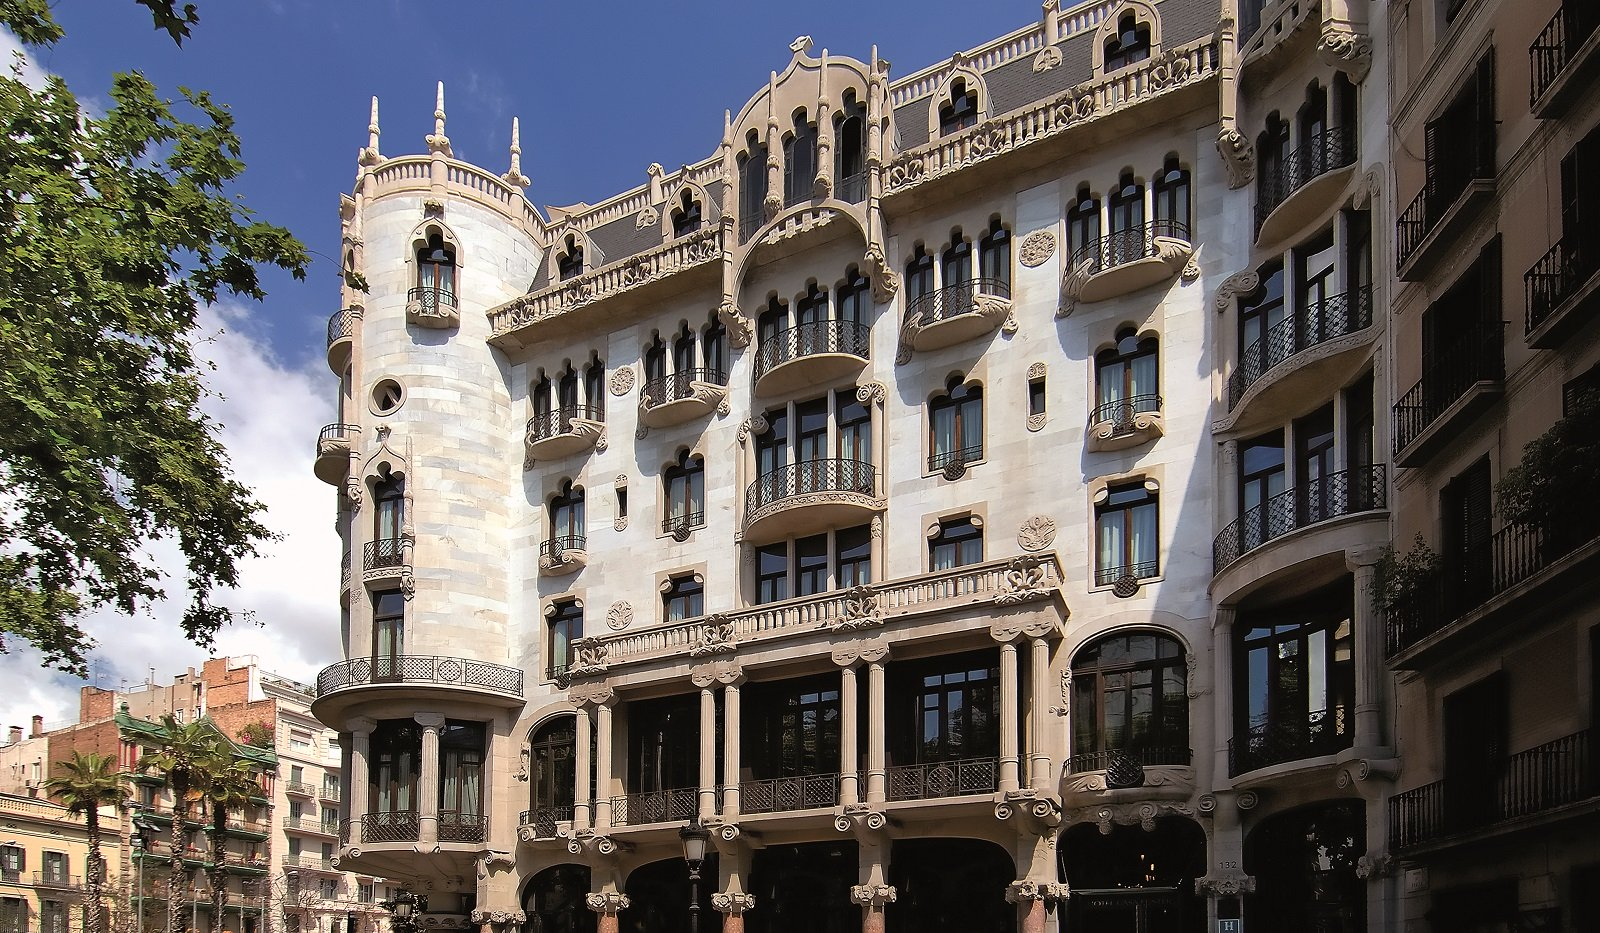 Facade of Casa Fuster hotel in Barcelona